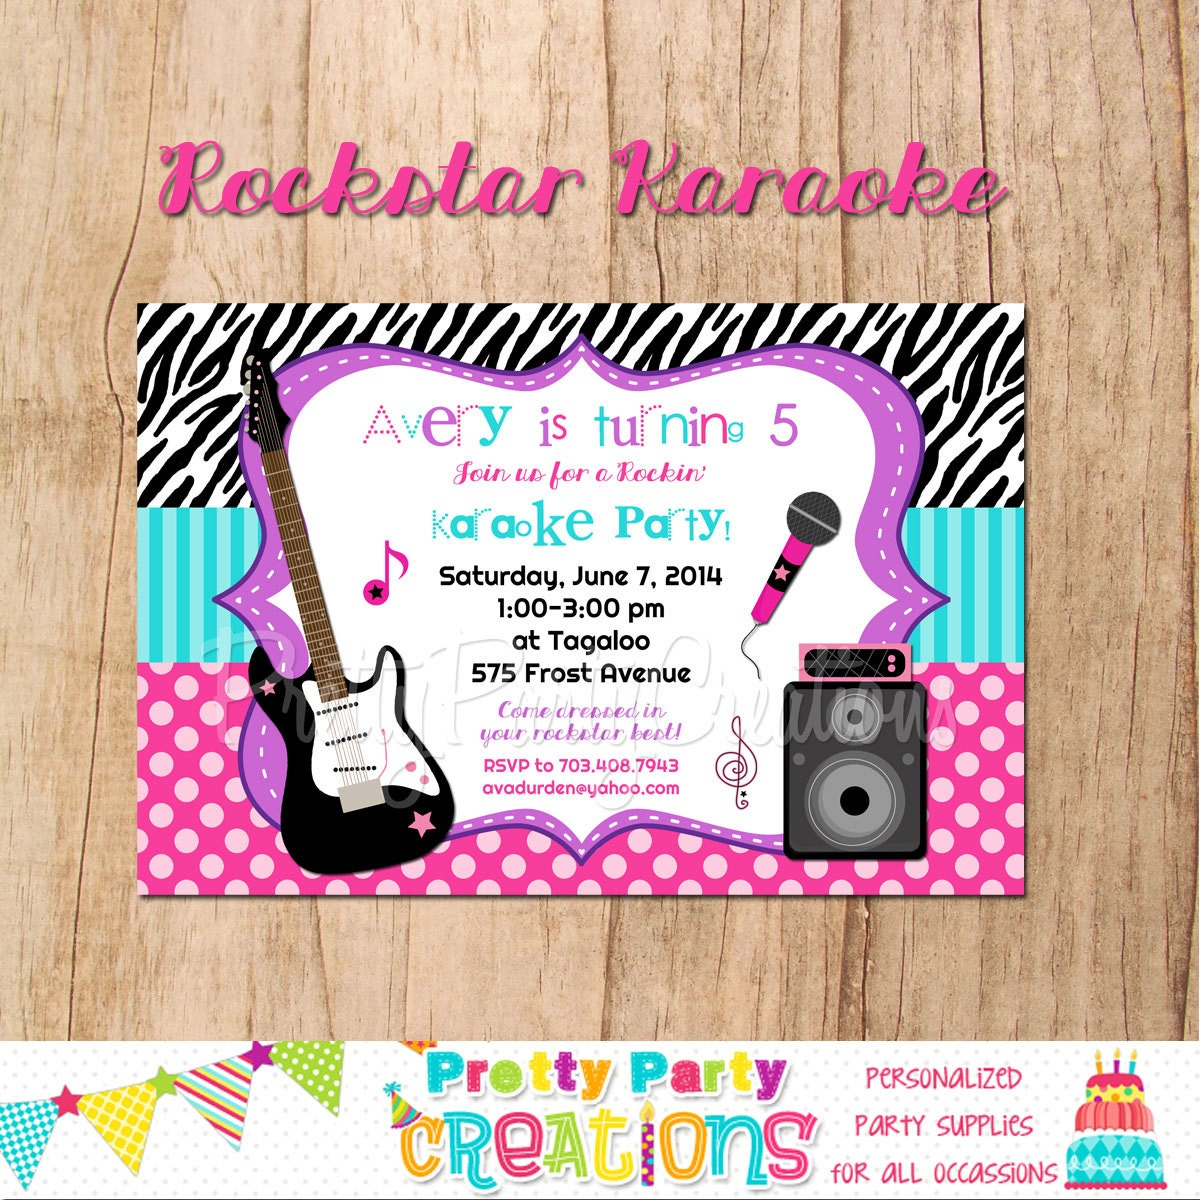 ROCK STAR KARAOKE Invitation You Print With Or Without